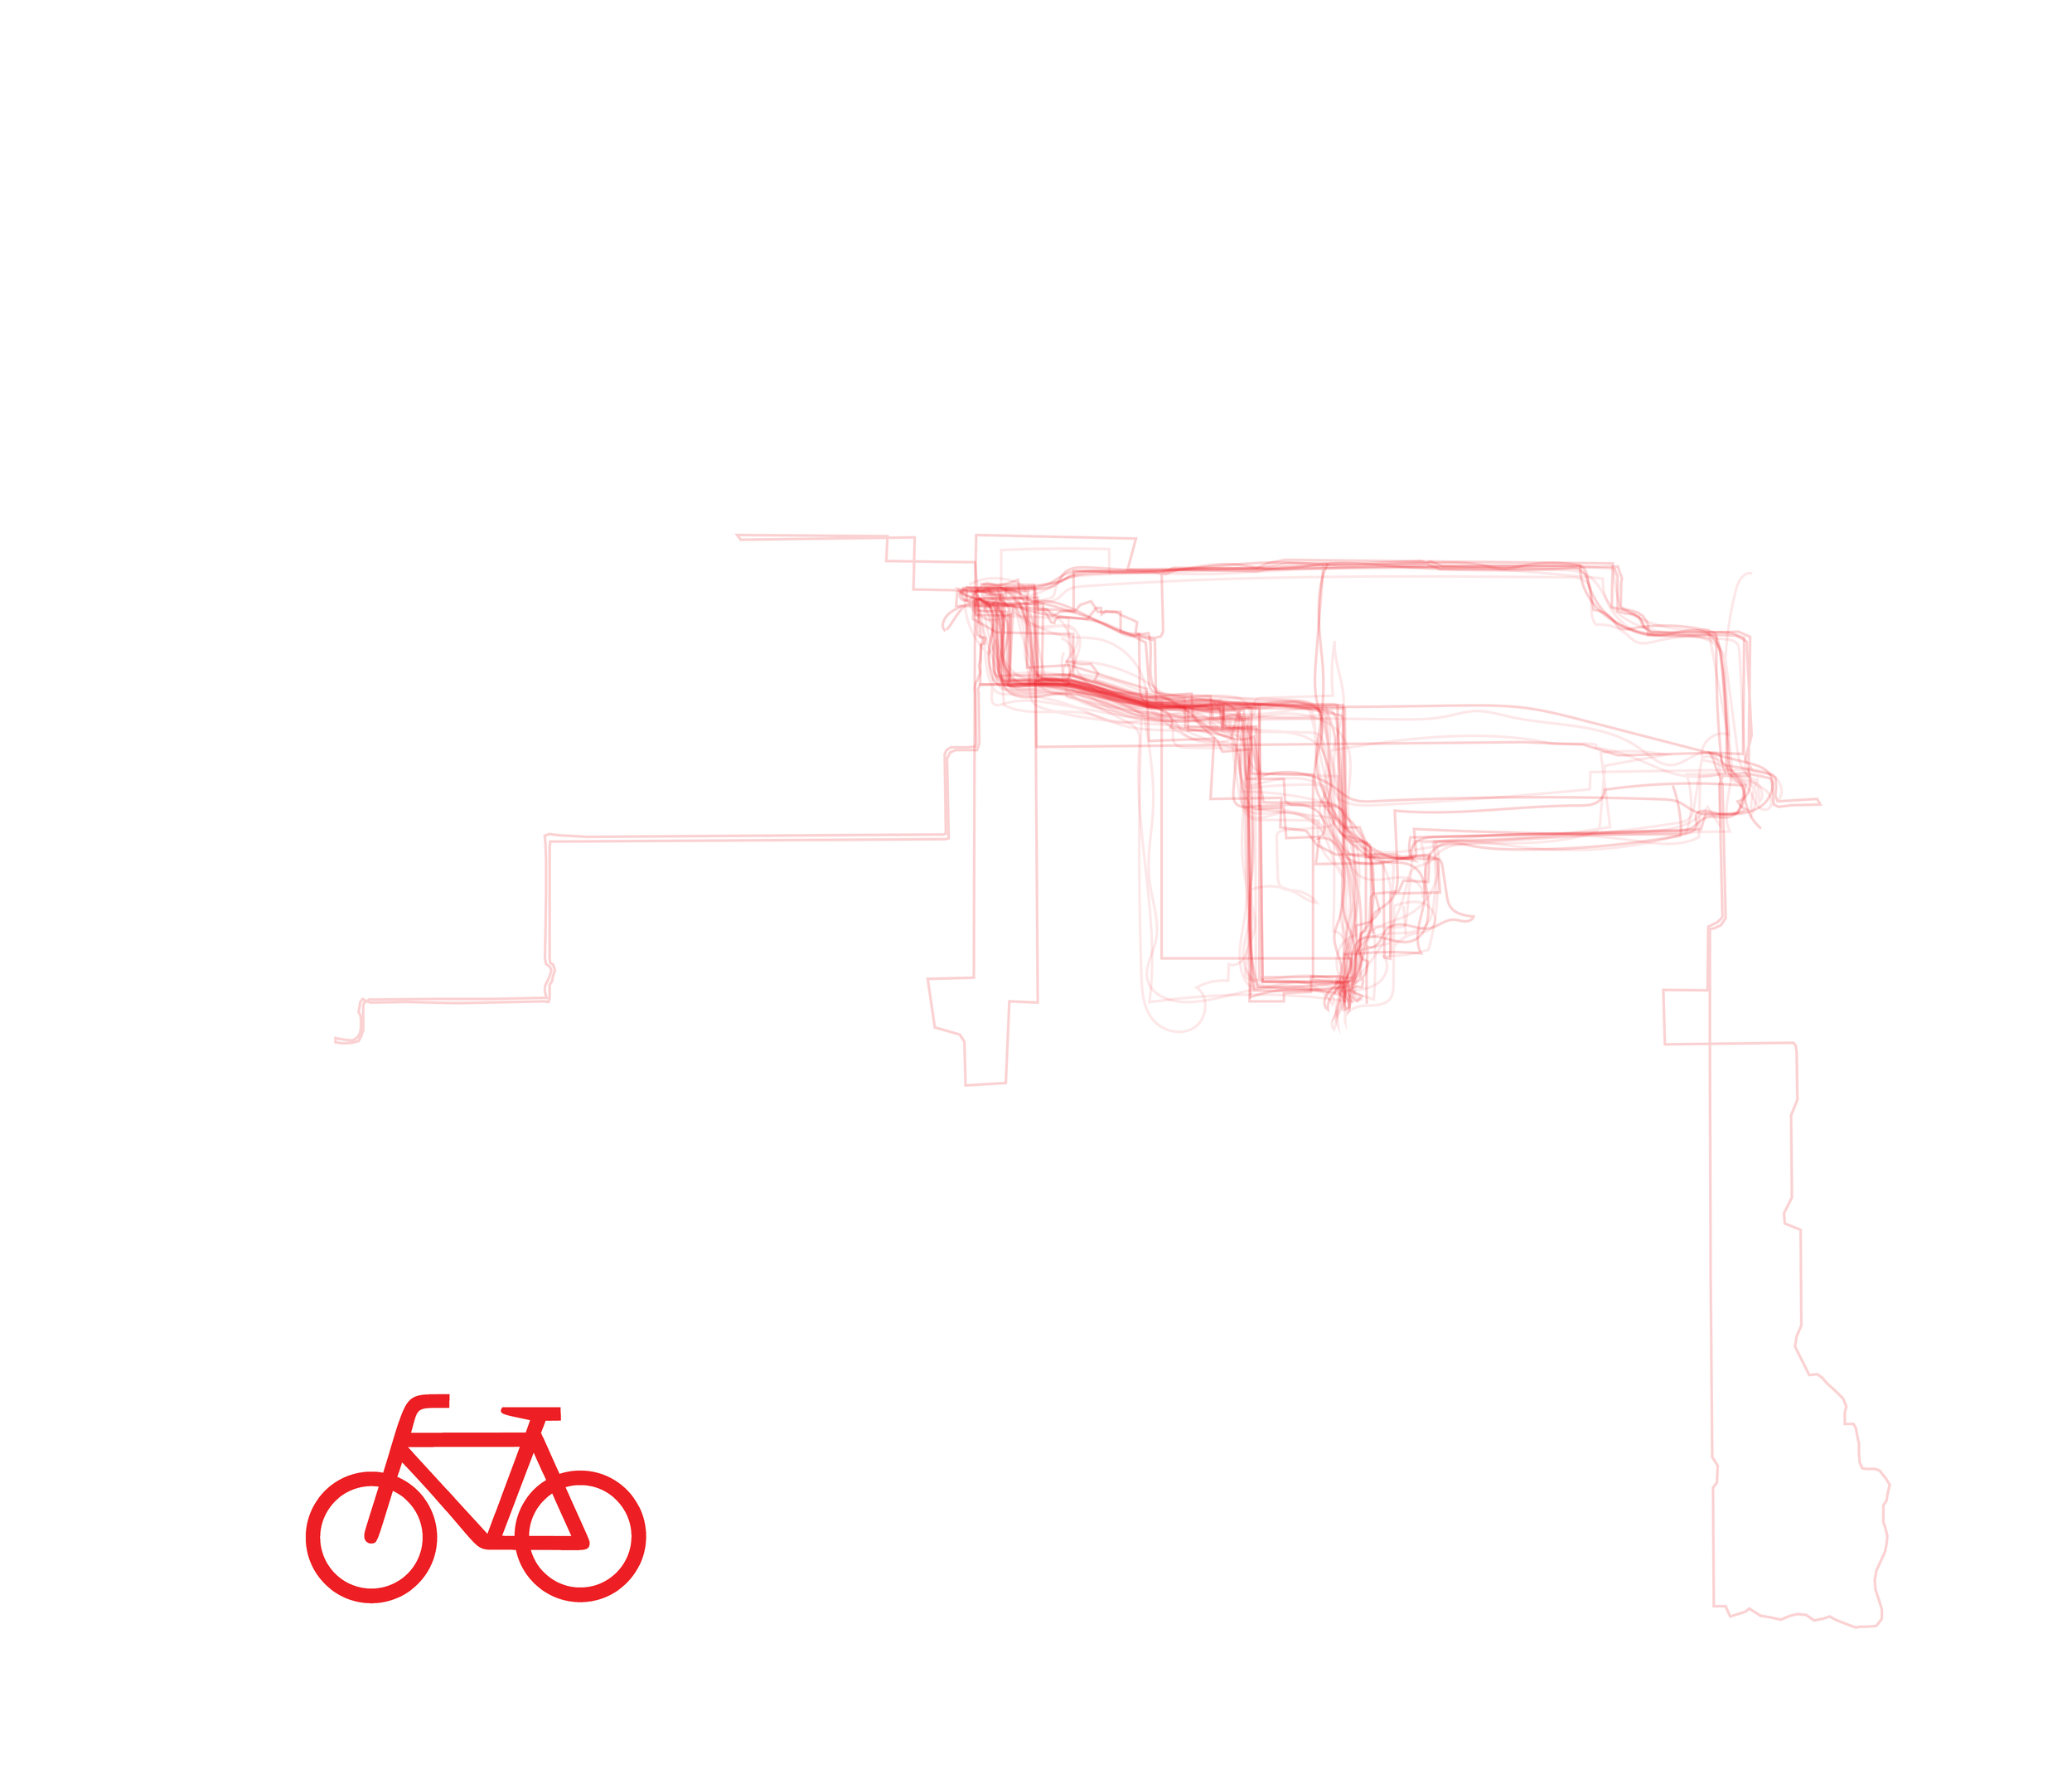 BIKING_SMALL SCALE MOVEMENT-01.png